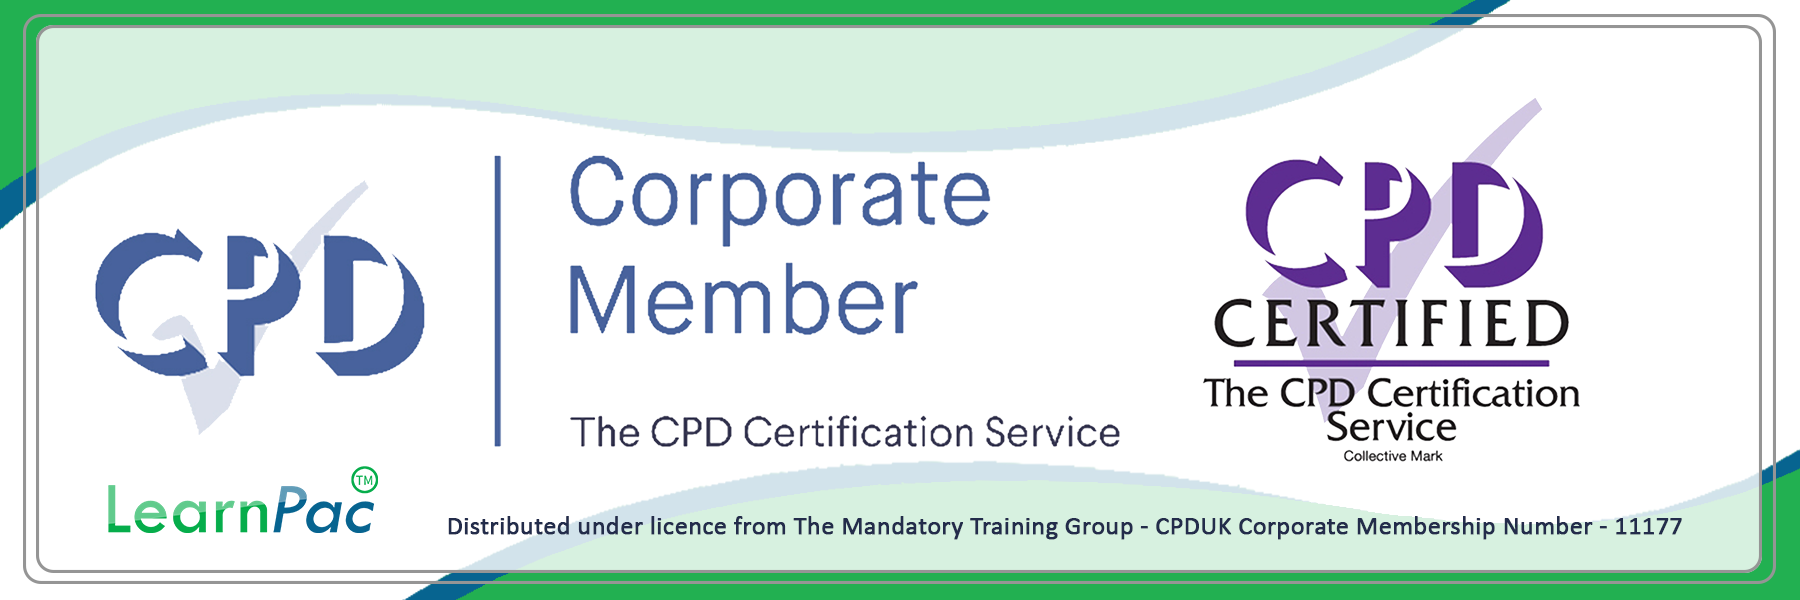 Adult Learning – Mental Skills - Online Training Course - CPD Accredited - LearnPac Systems UK -